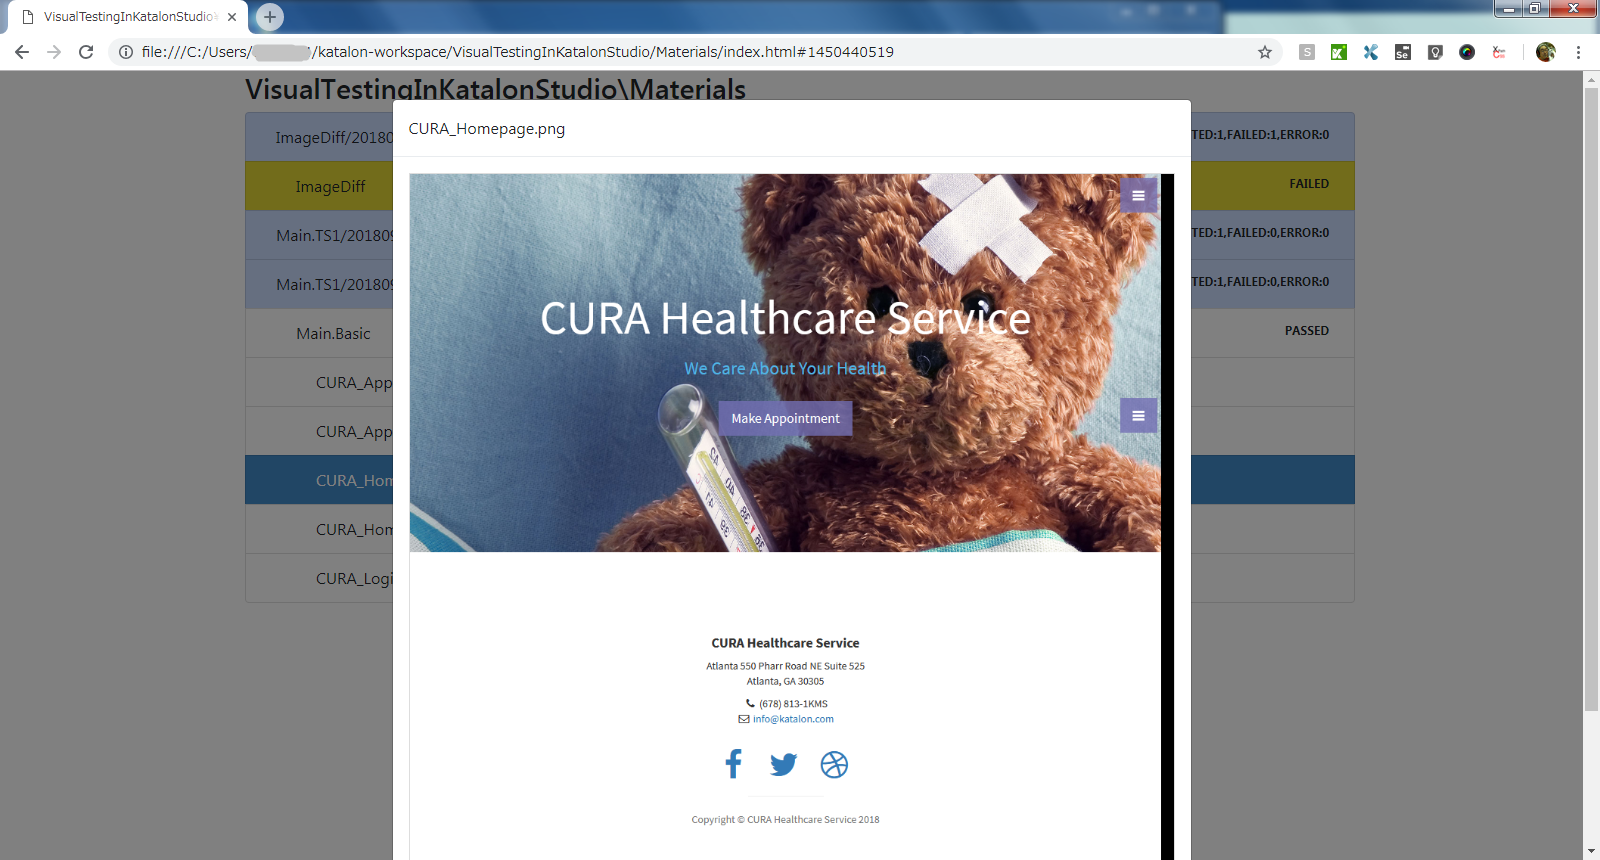 Production_CURA_Homepage.png